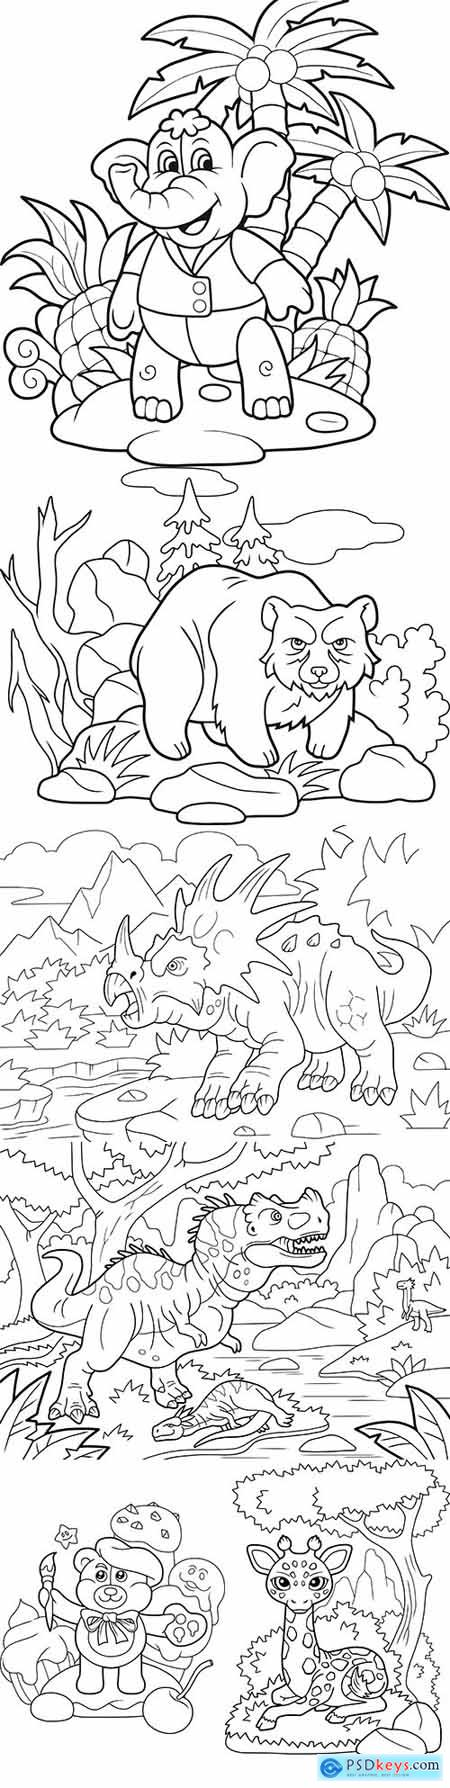 Cute Animals and Nature Illustrations for Coloring Book